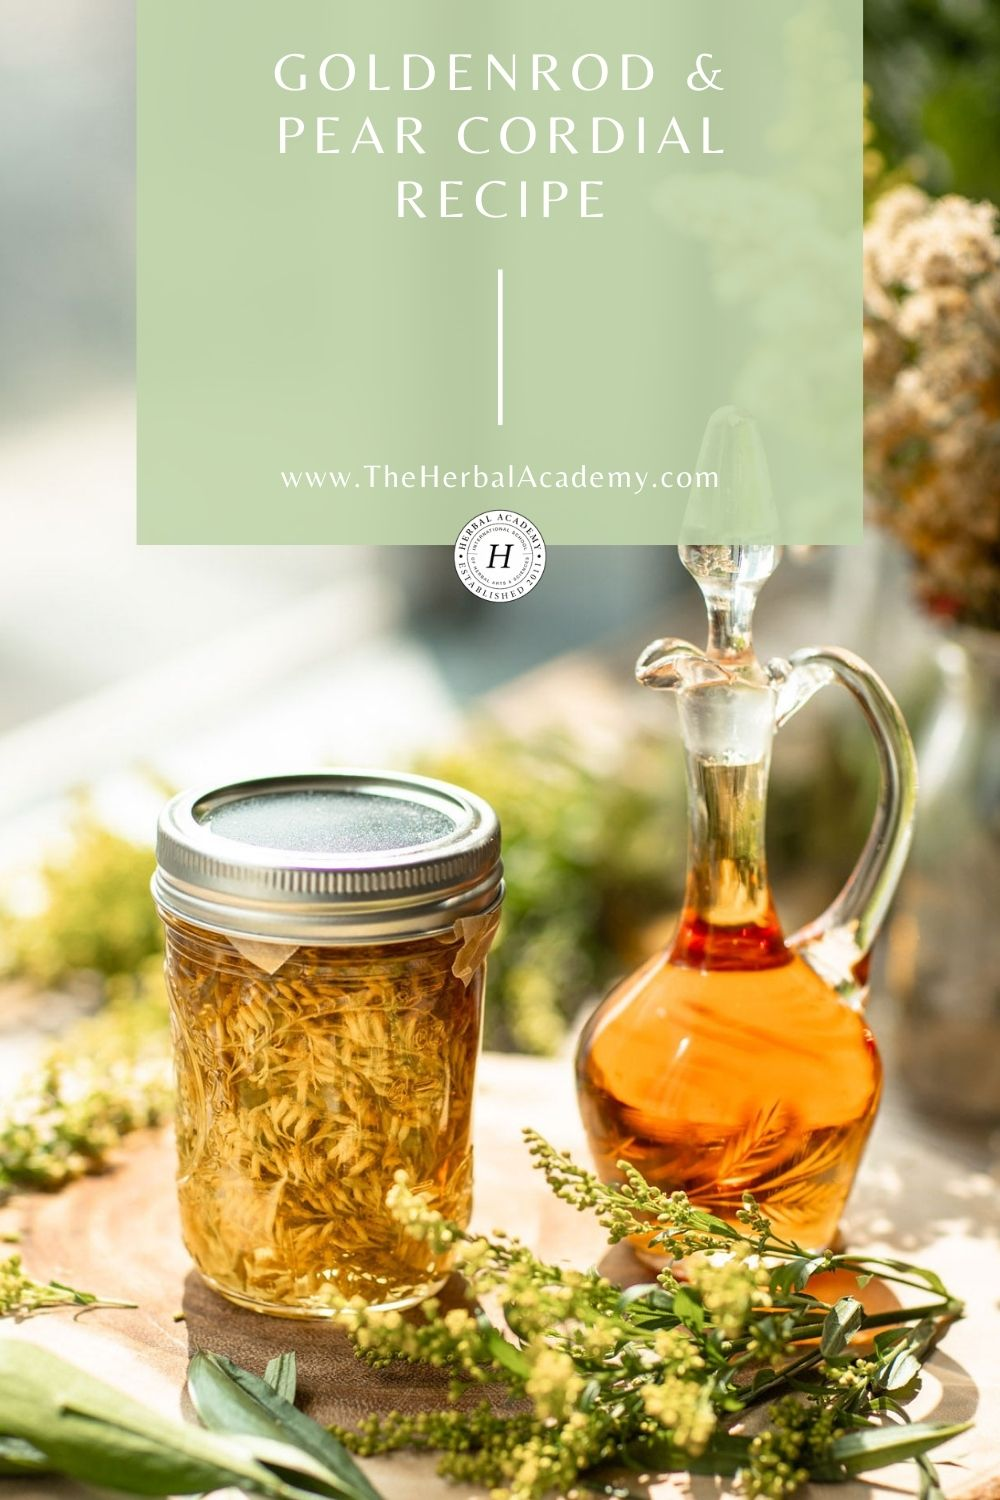 Using goldenrod in a cordial recipe - Pinterest Graphic